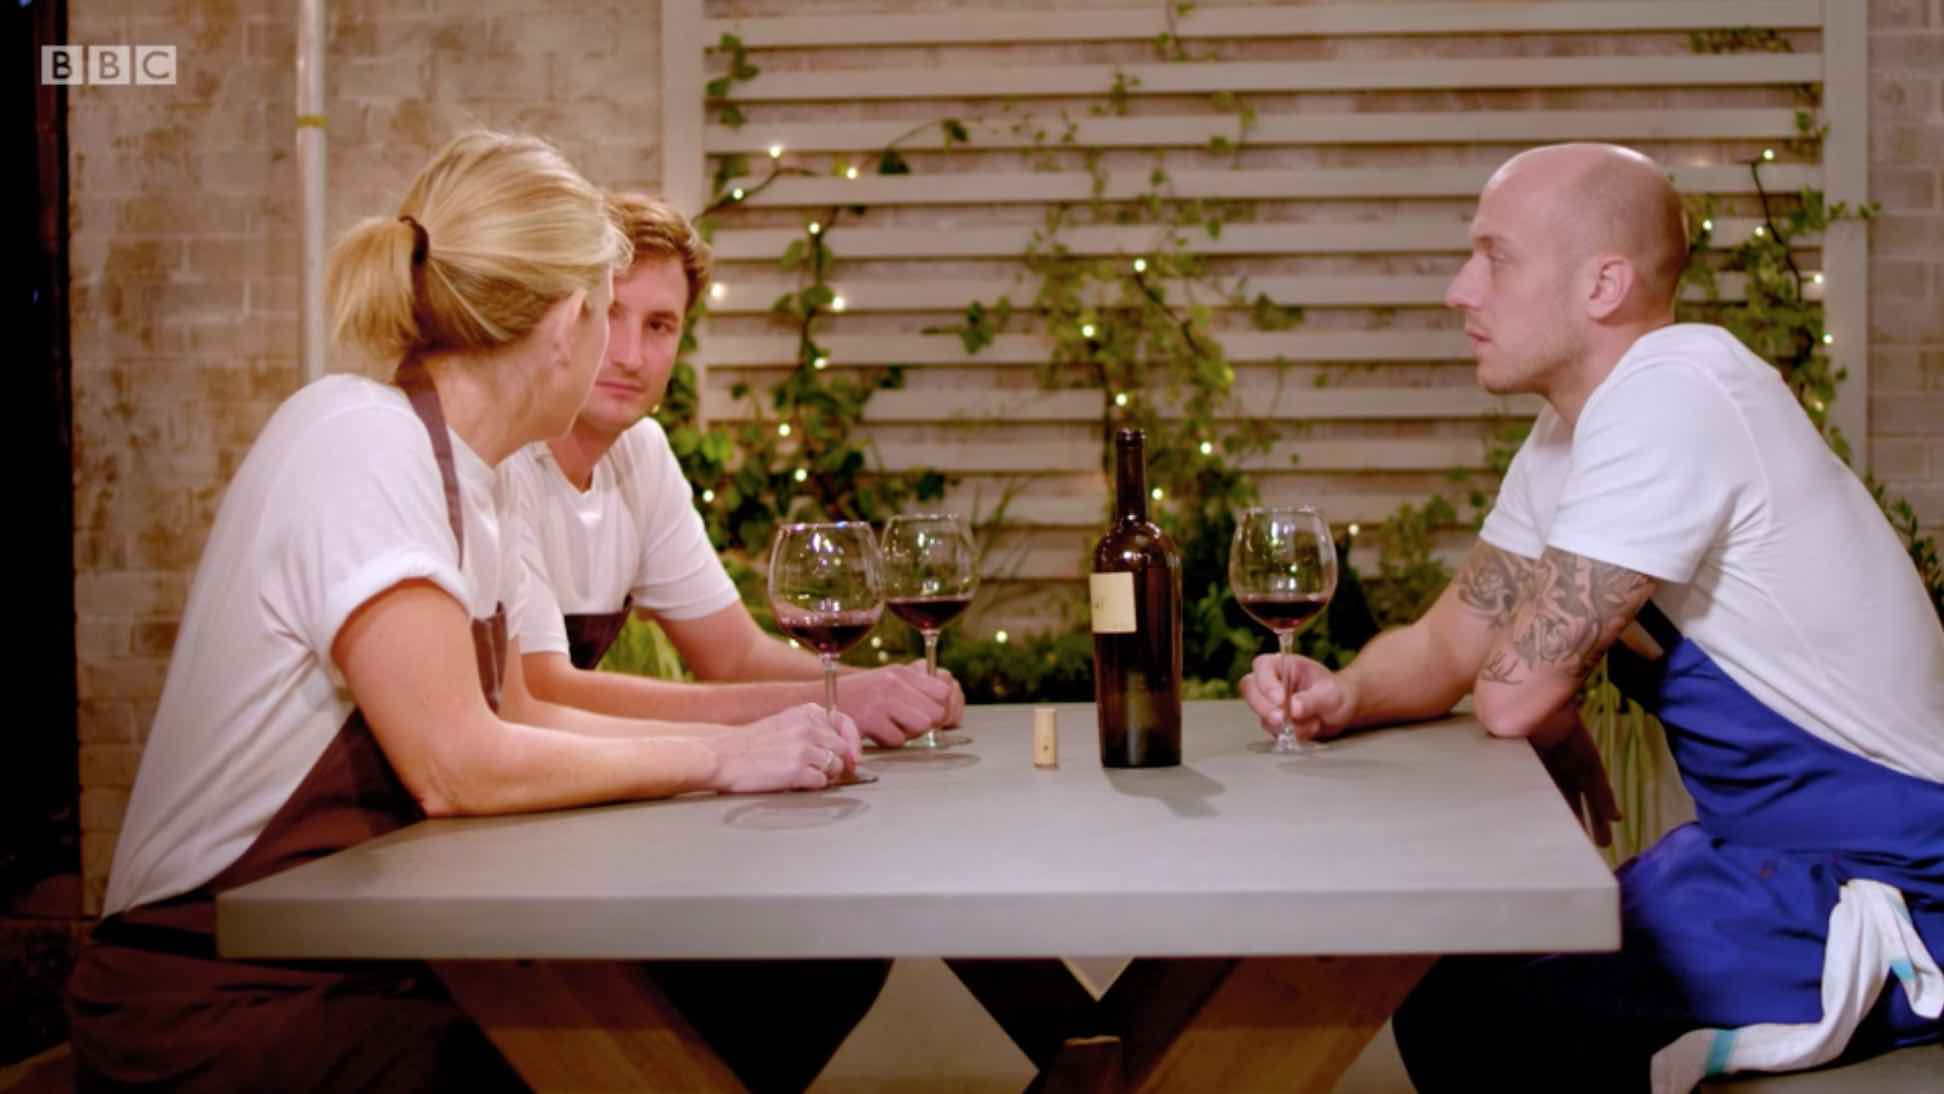 Emily sharing a glass of her own wine (E+M)2 with Lee and Jo